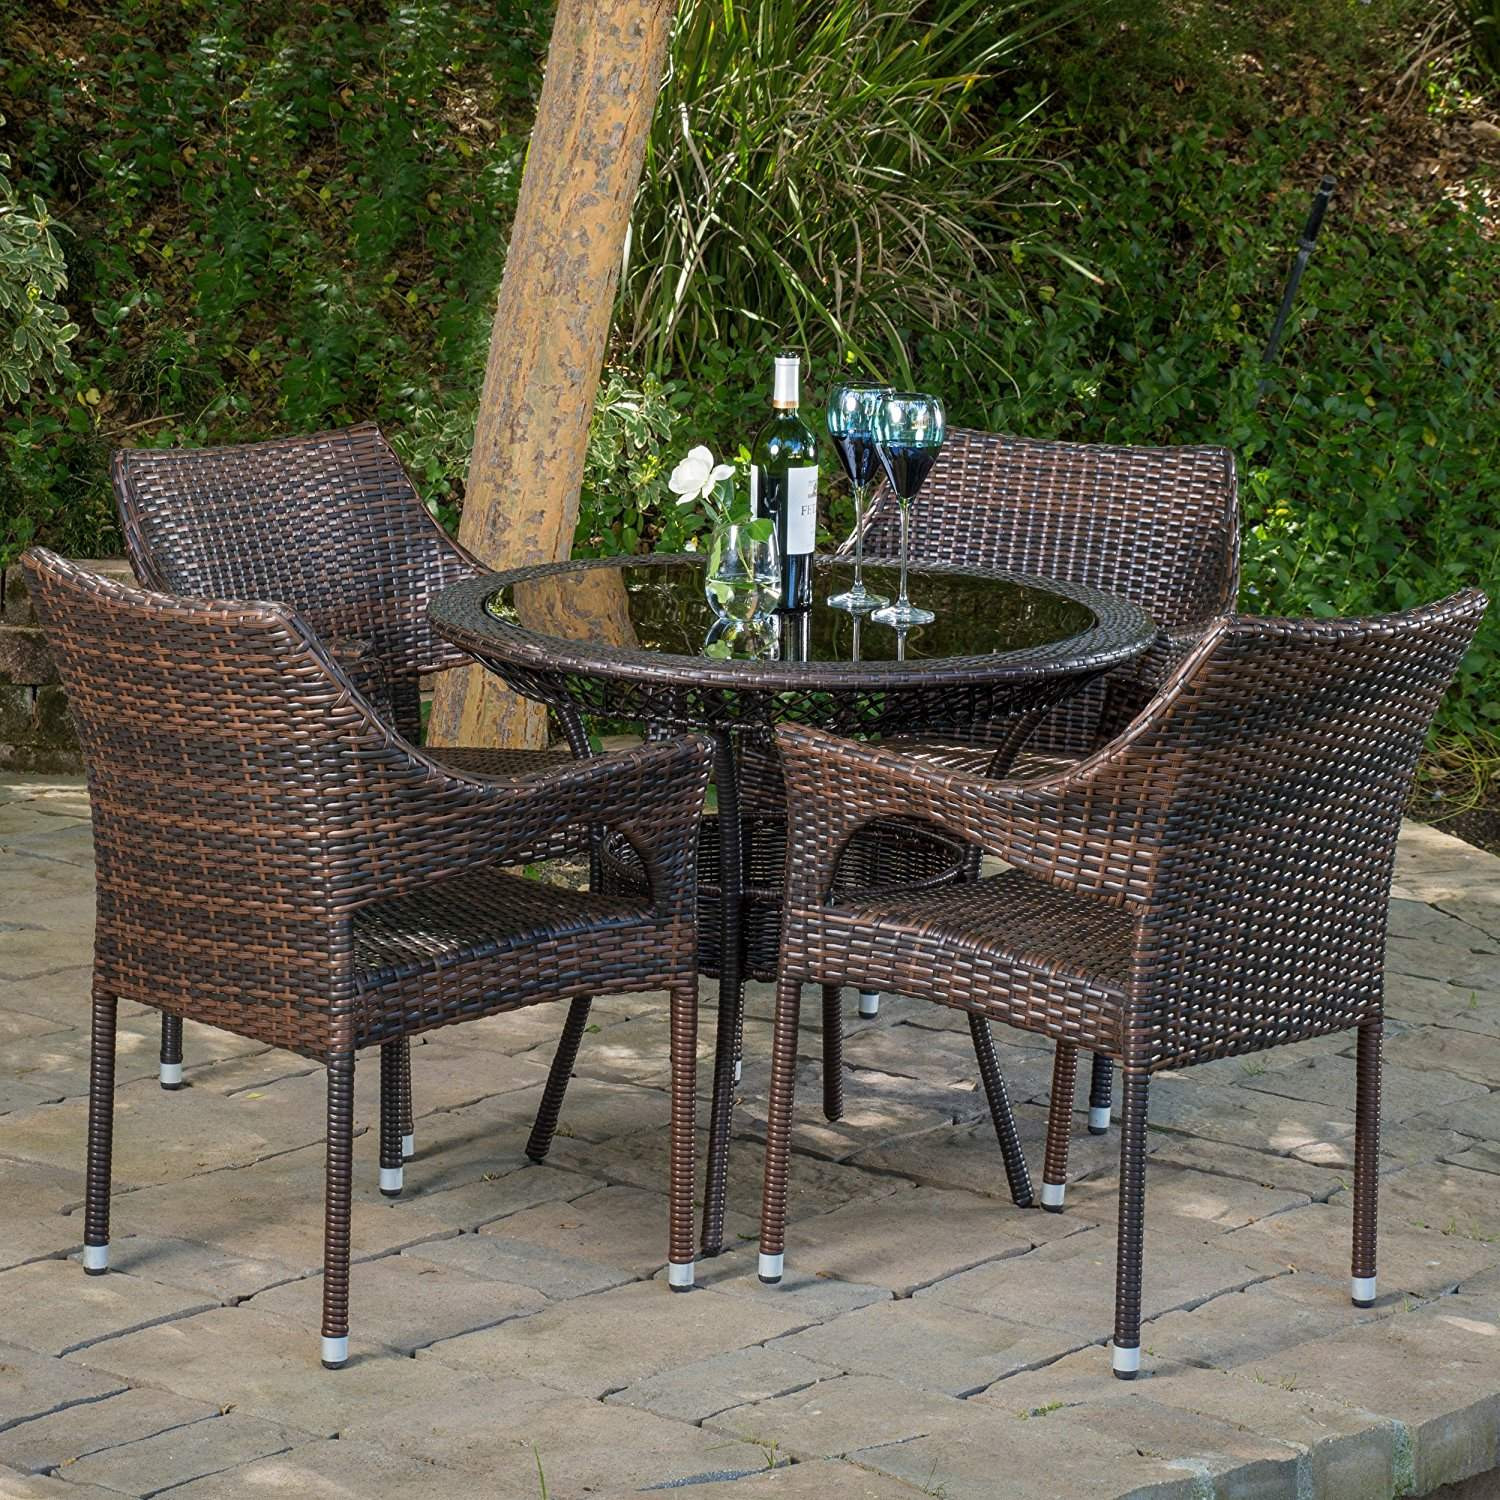 Best ideas about Outdoor Patio Dining Sets . Save or Pin Top 10 Best Garden Furniture Sets 2018 Now.